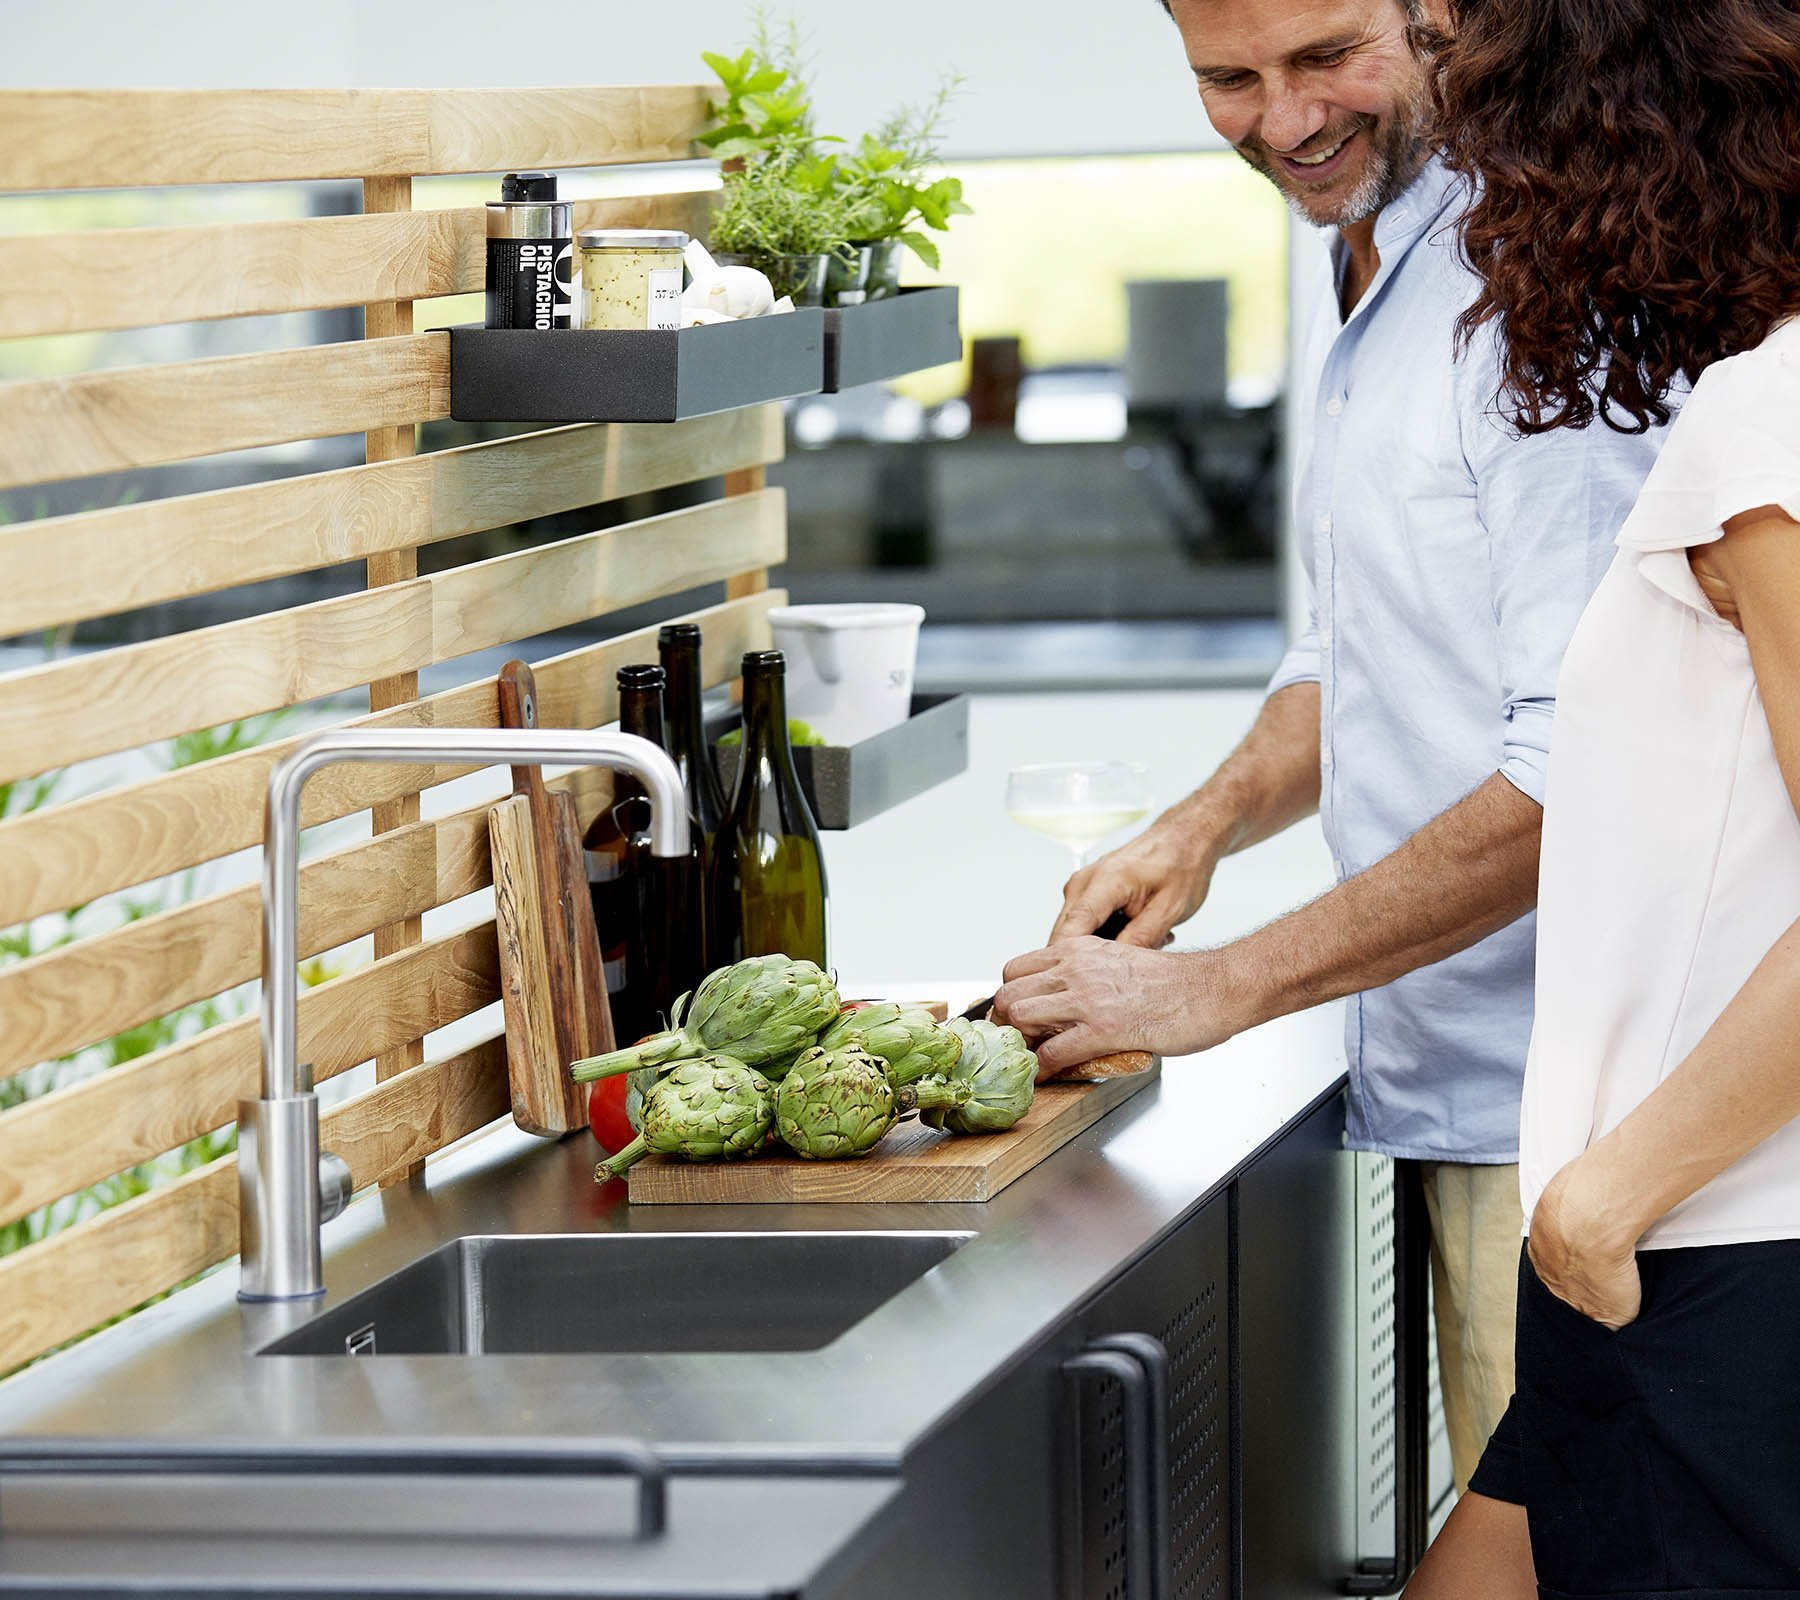 Teak Wall for Drop Kitchen accessory from Cane-line